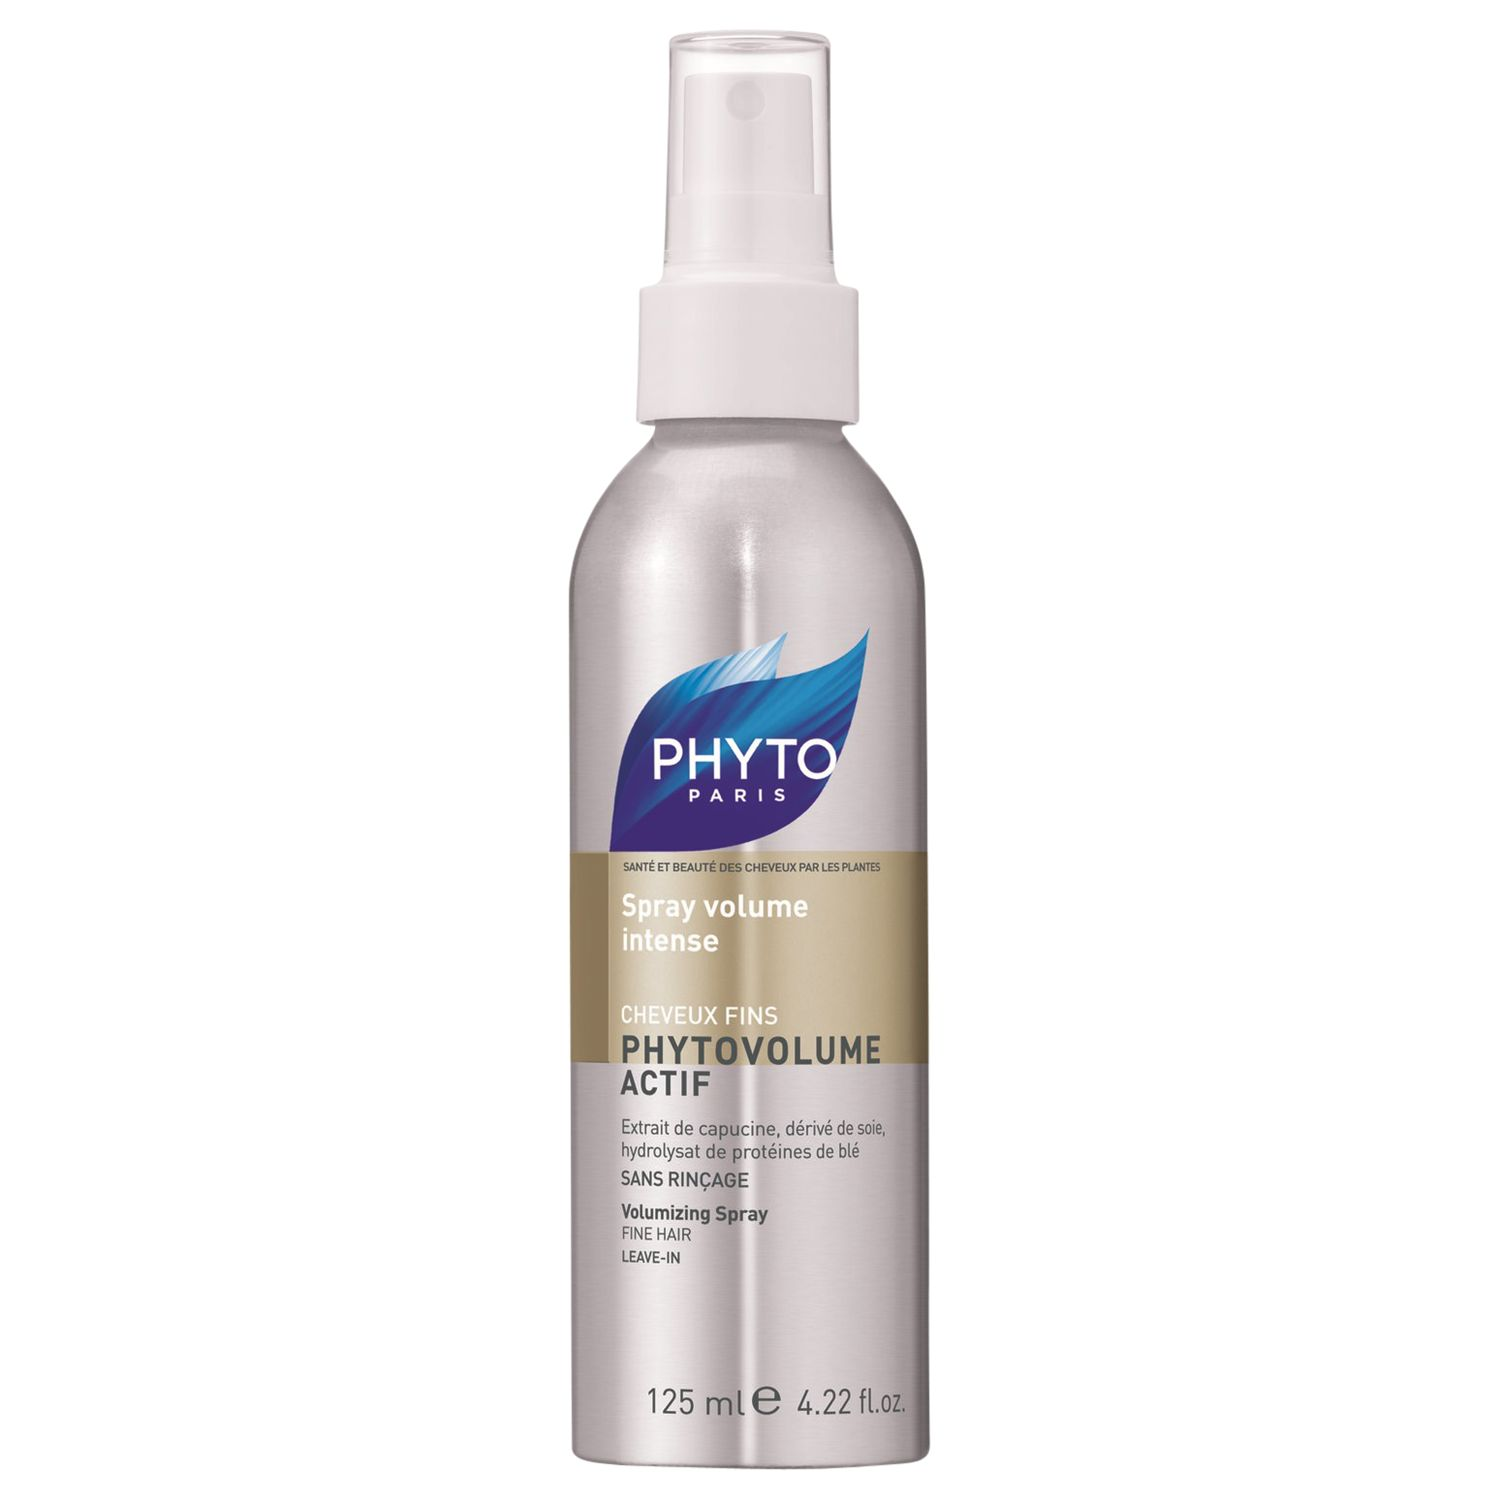 Phyto Phyto Phytovolume Actif Volumizer Spray, 125ml